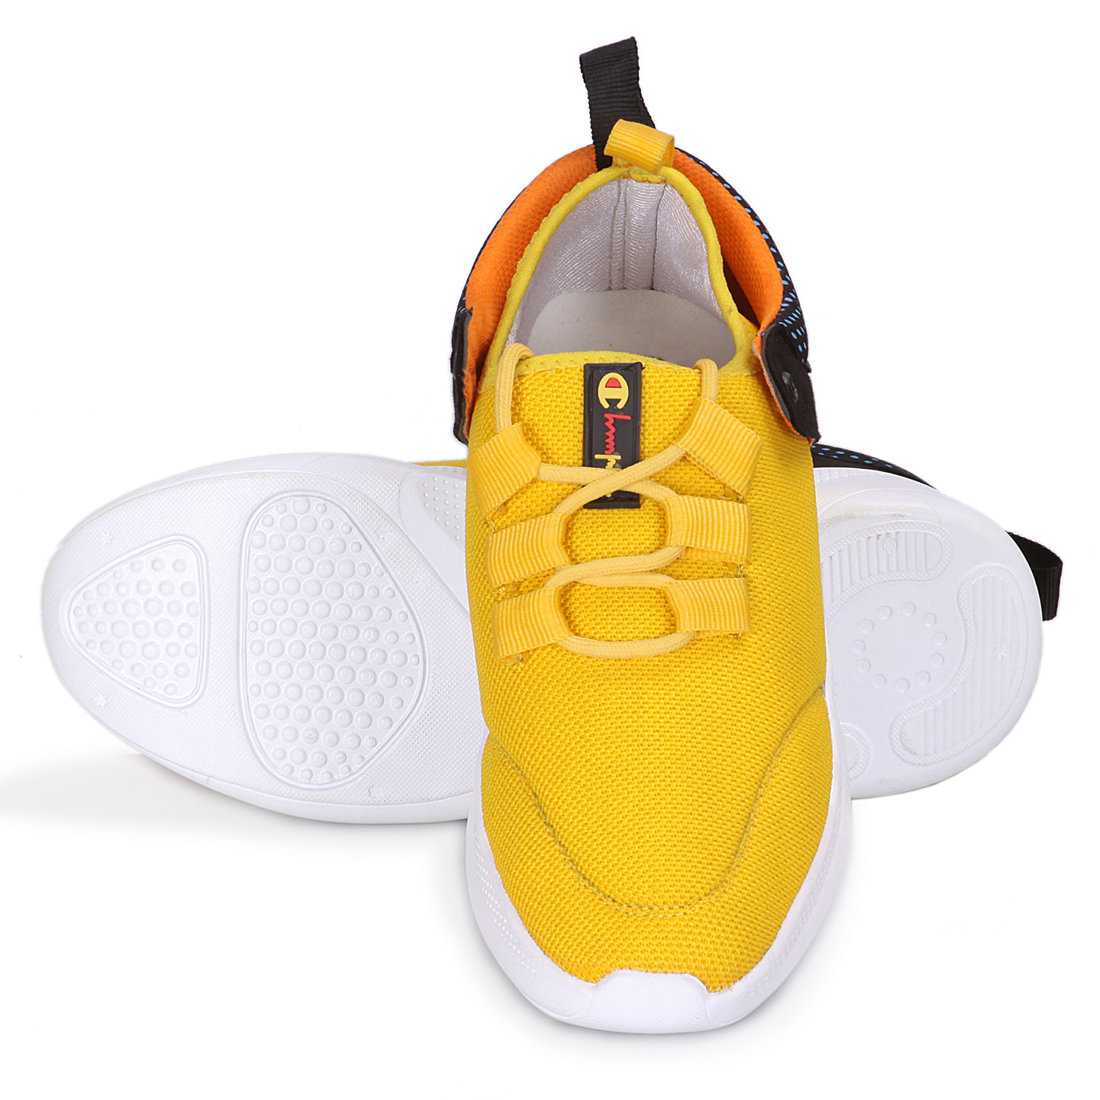 IMCOLUS381A.353_YELLOW FANCY & STYLESH Sports Shoes SHOE FOR MEN'S IMCOLUS381A.353_YLO (YELLOW, 7-10, 4 PAIR)